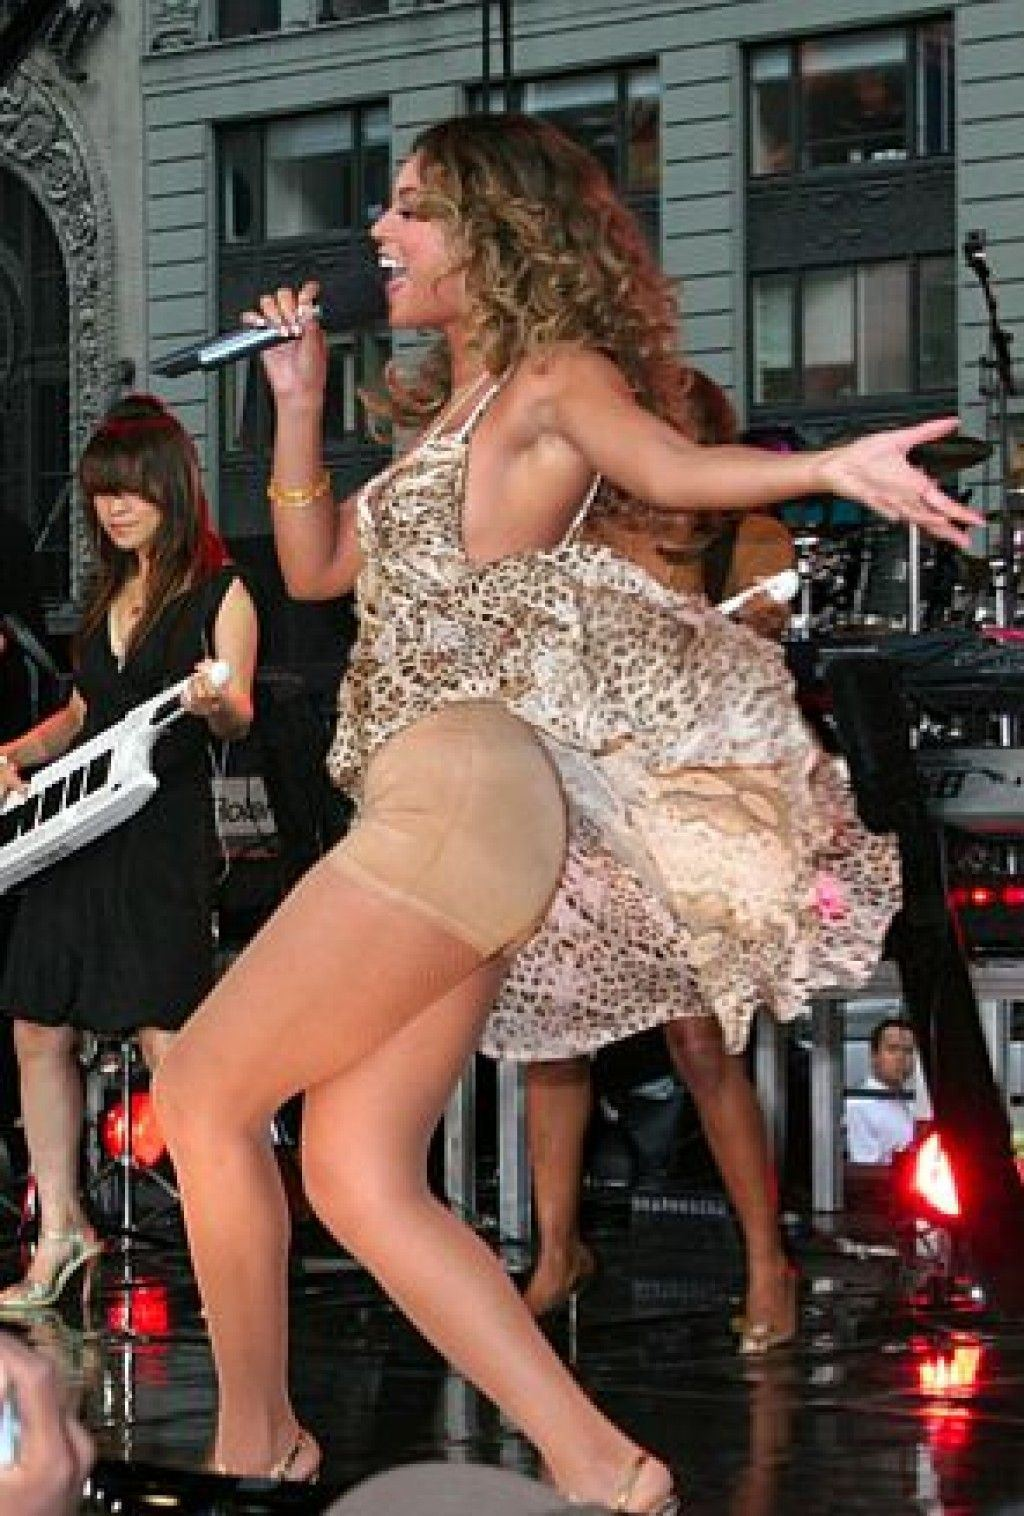 Taylor Swift Pantie Upskirts New Sex Images Comments 2